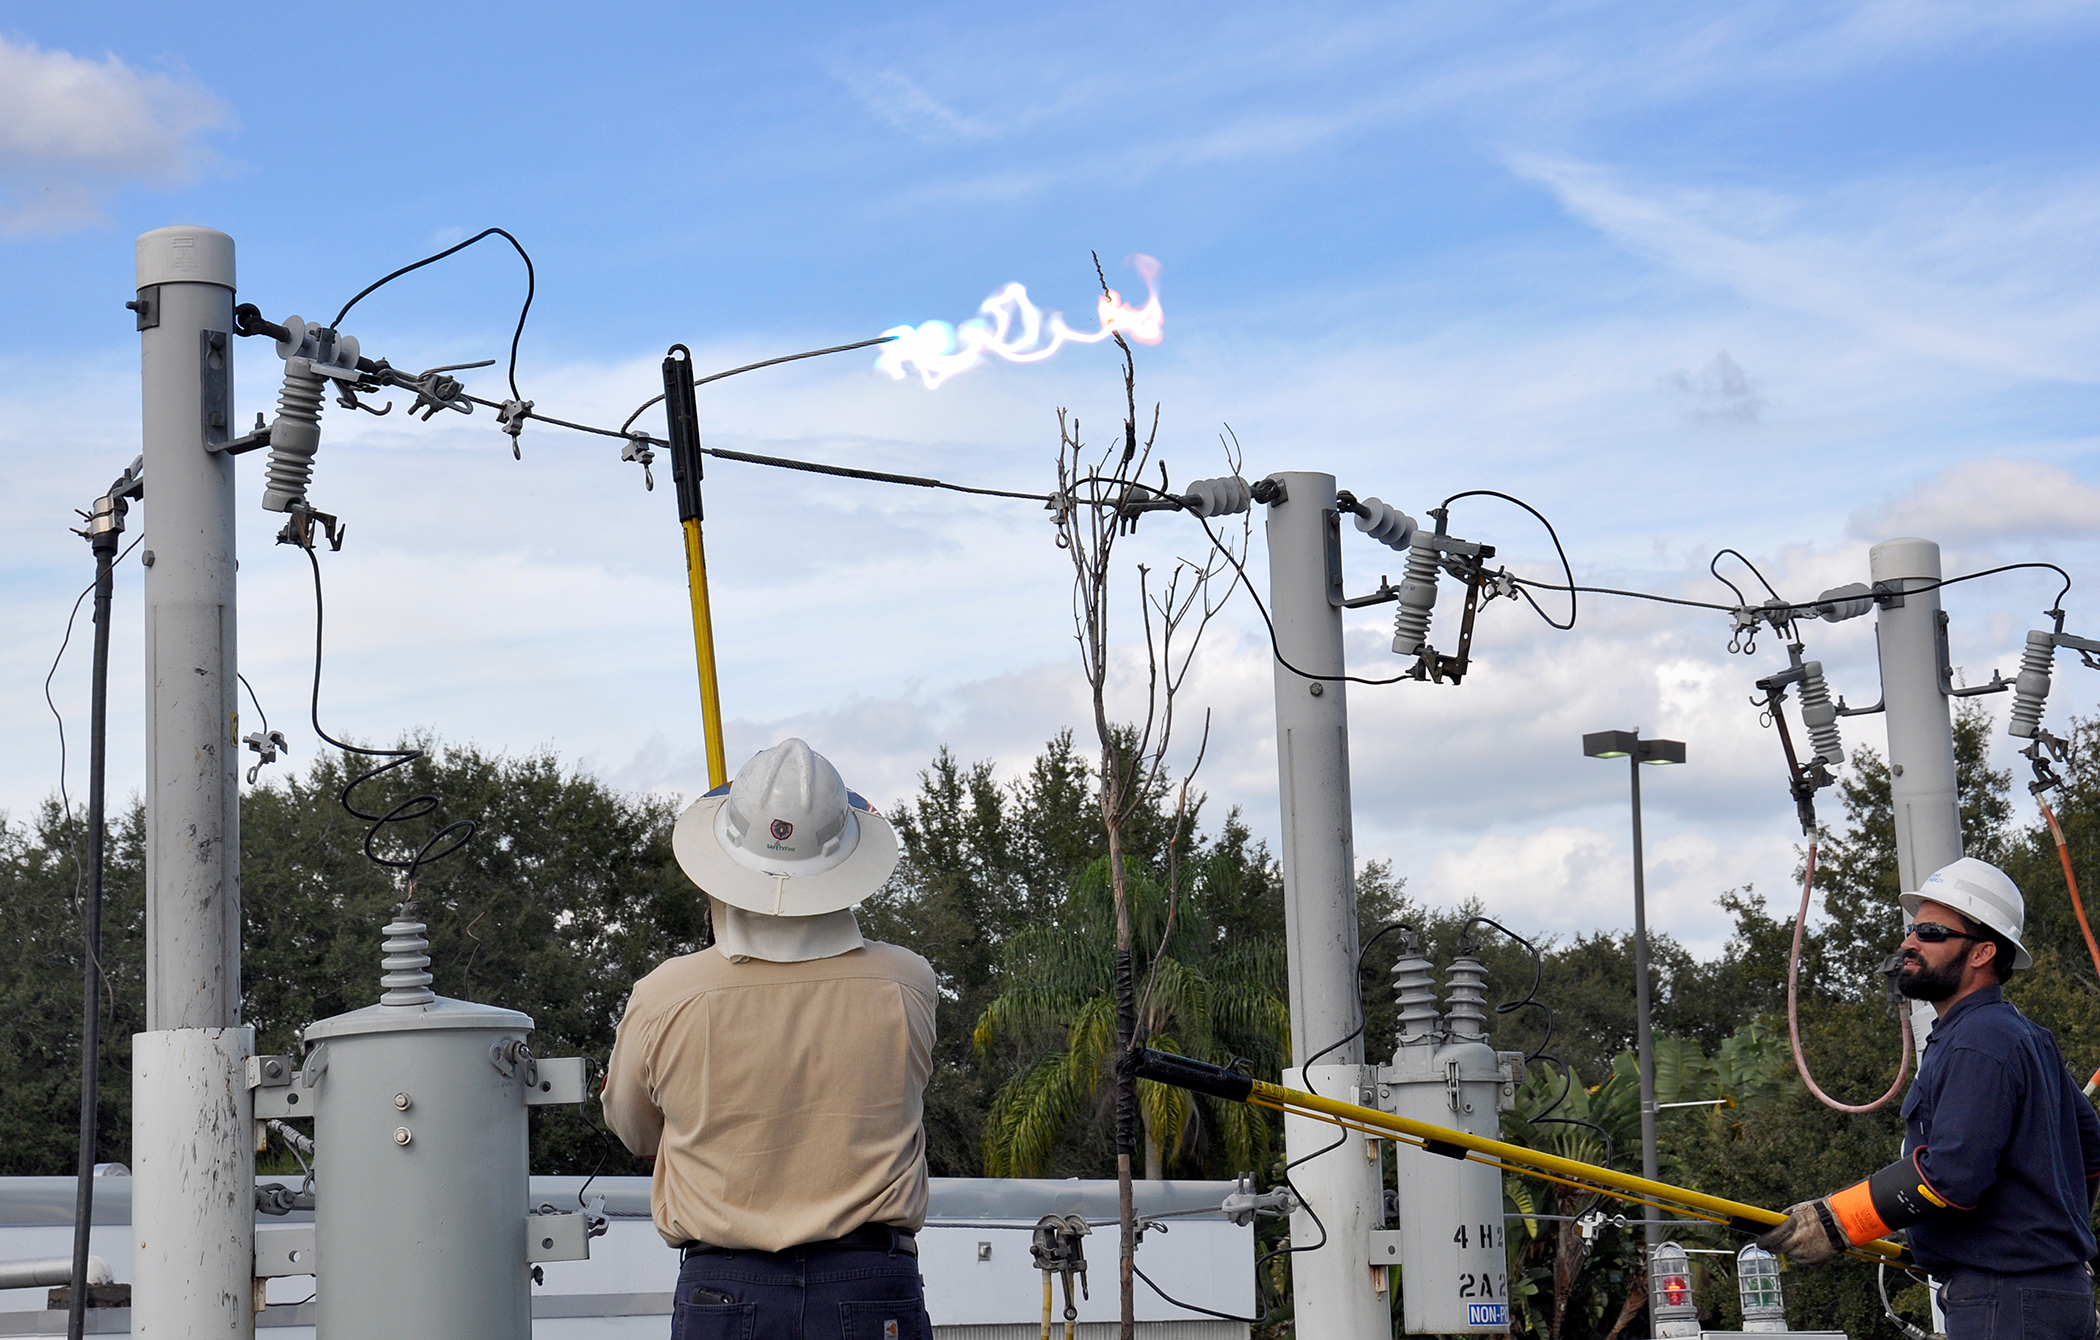 November 2016 South Florida State College Harbor Fl Short Circuit Sparks No Power Electrical Repairs A Duke Energy Instructor Shows How Lines Spark Fires In This Safety Course At The